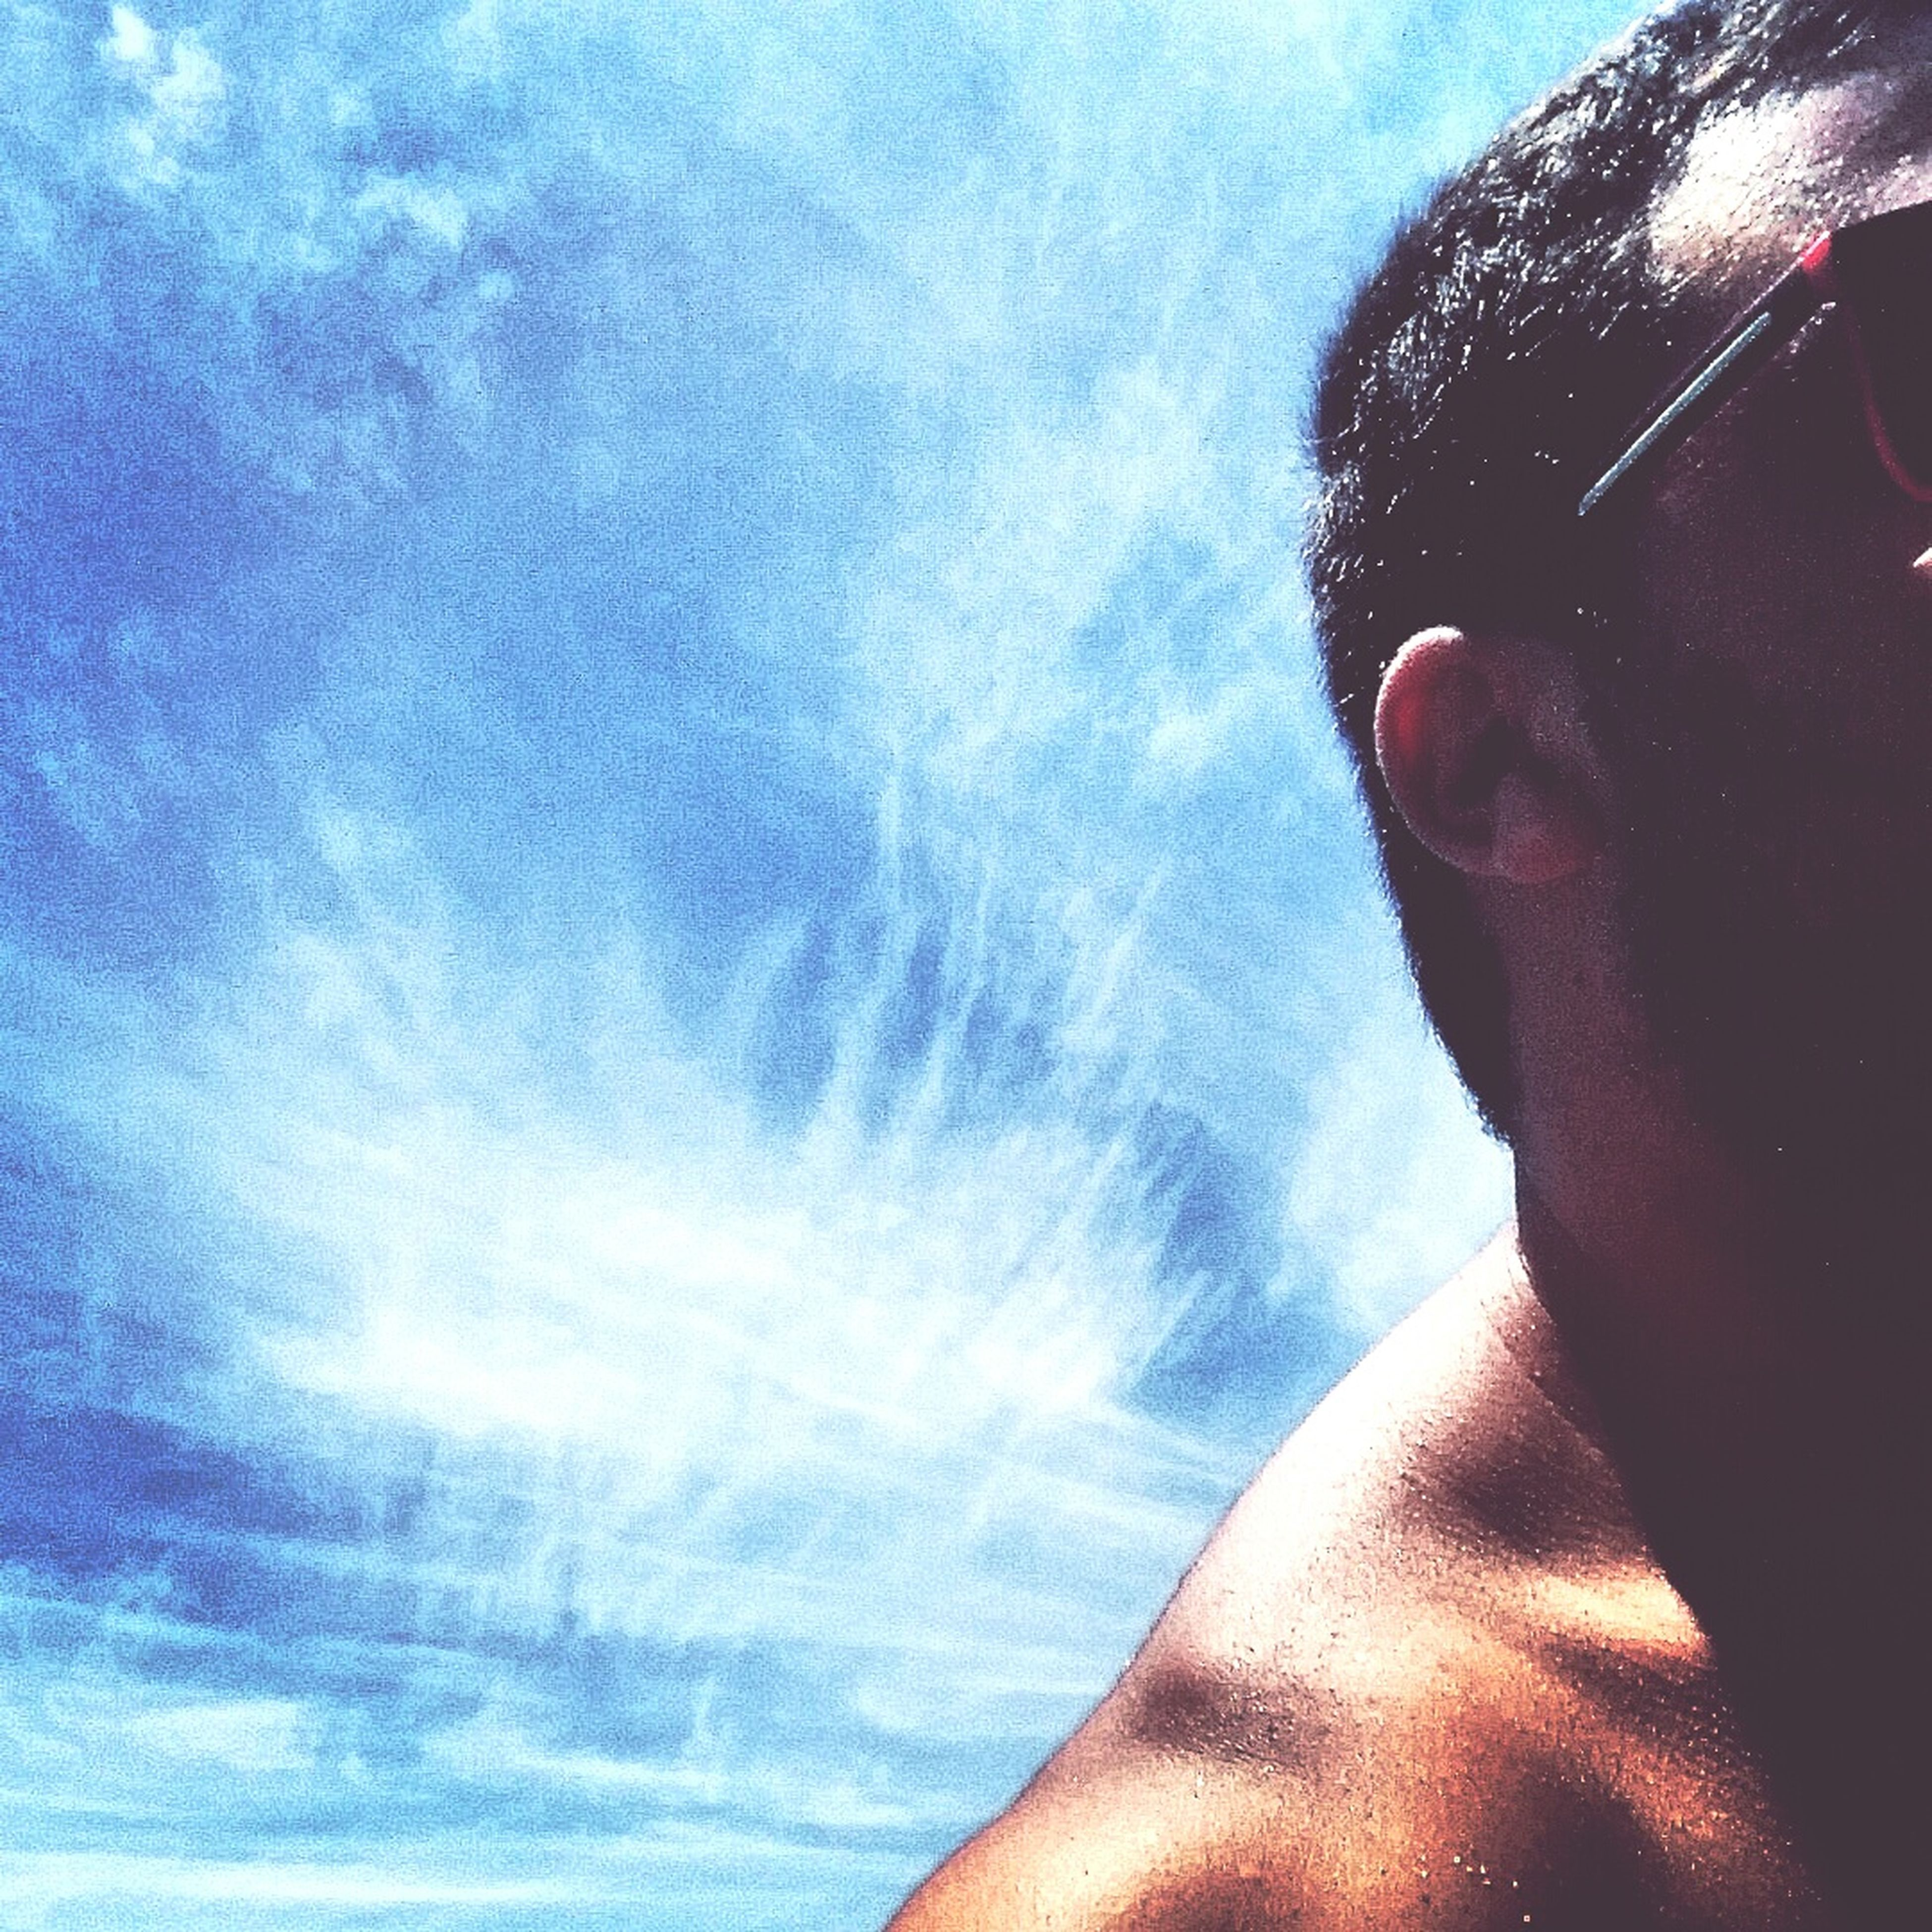 lifestyles, leisure activity, part of, person, personal perspective, sky, cropped, men, close-up, unrecognizable person, headshot, blue, day, cloud - sky, human finger